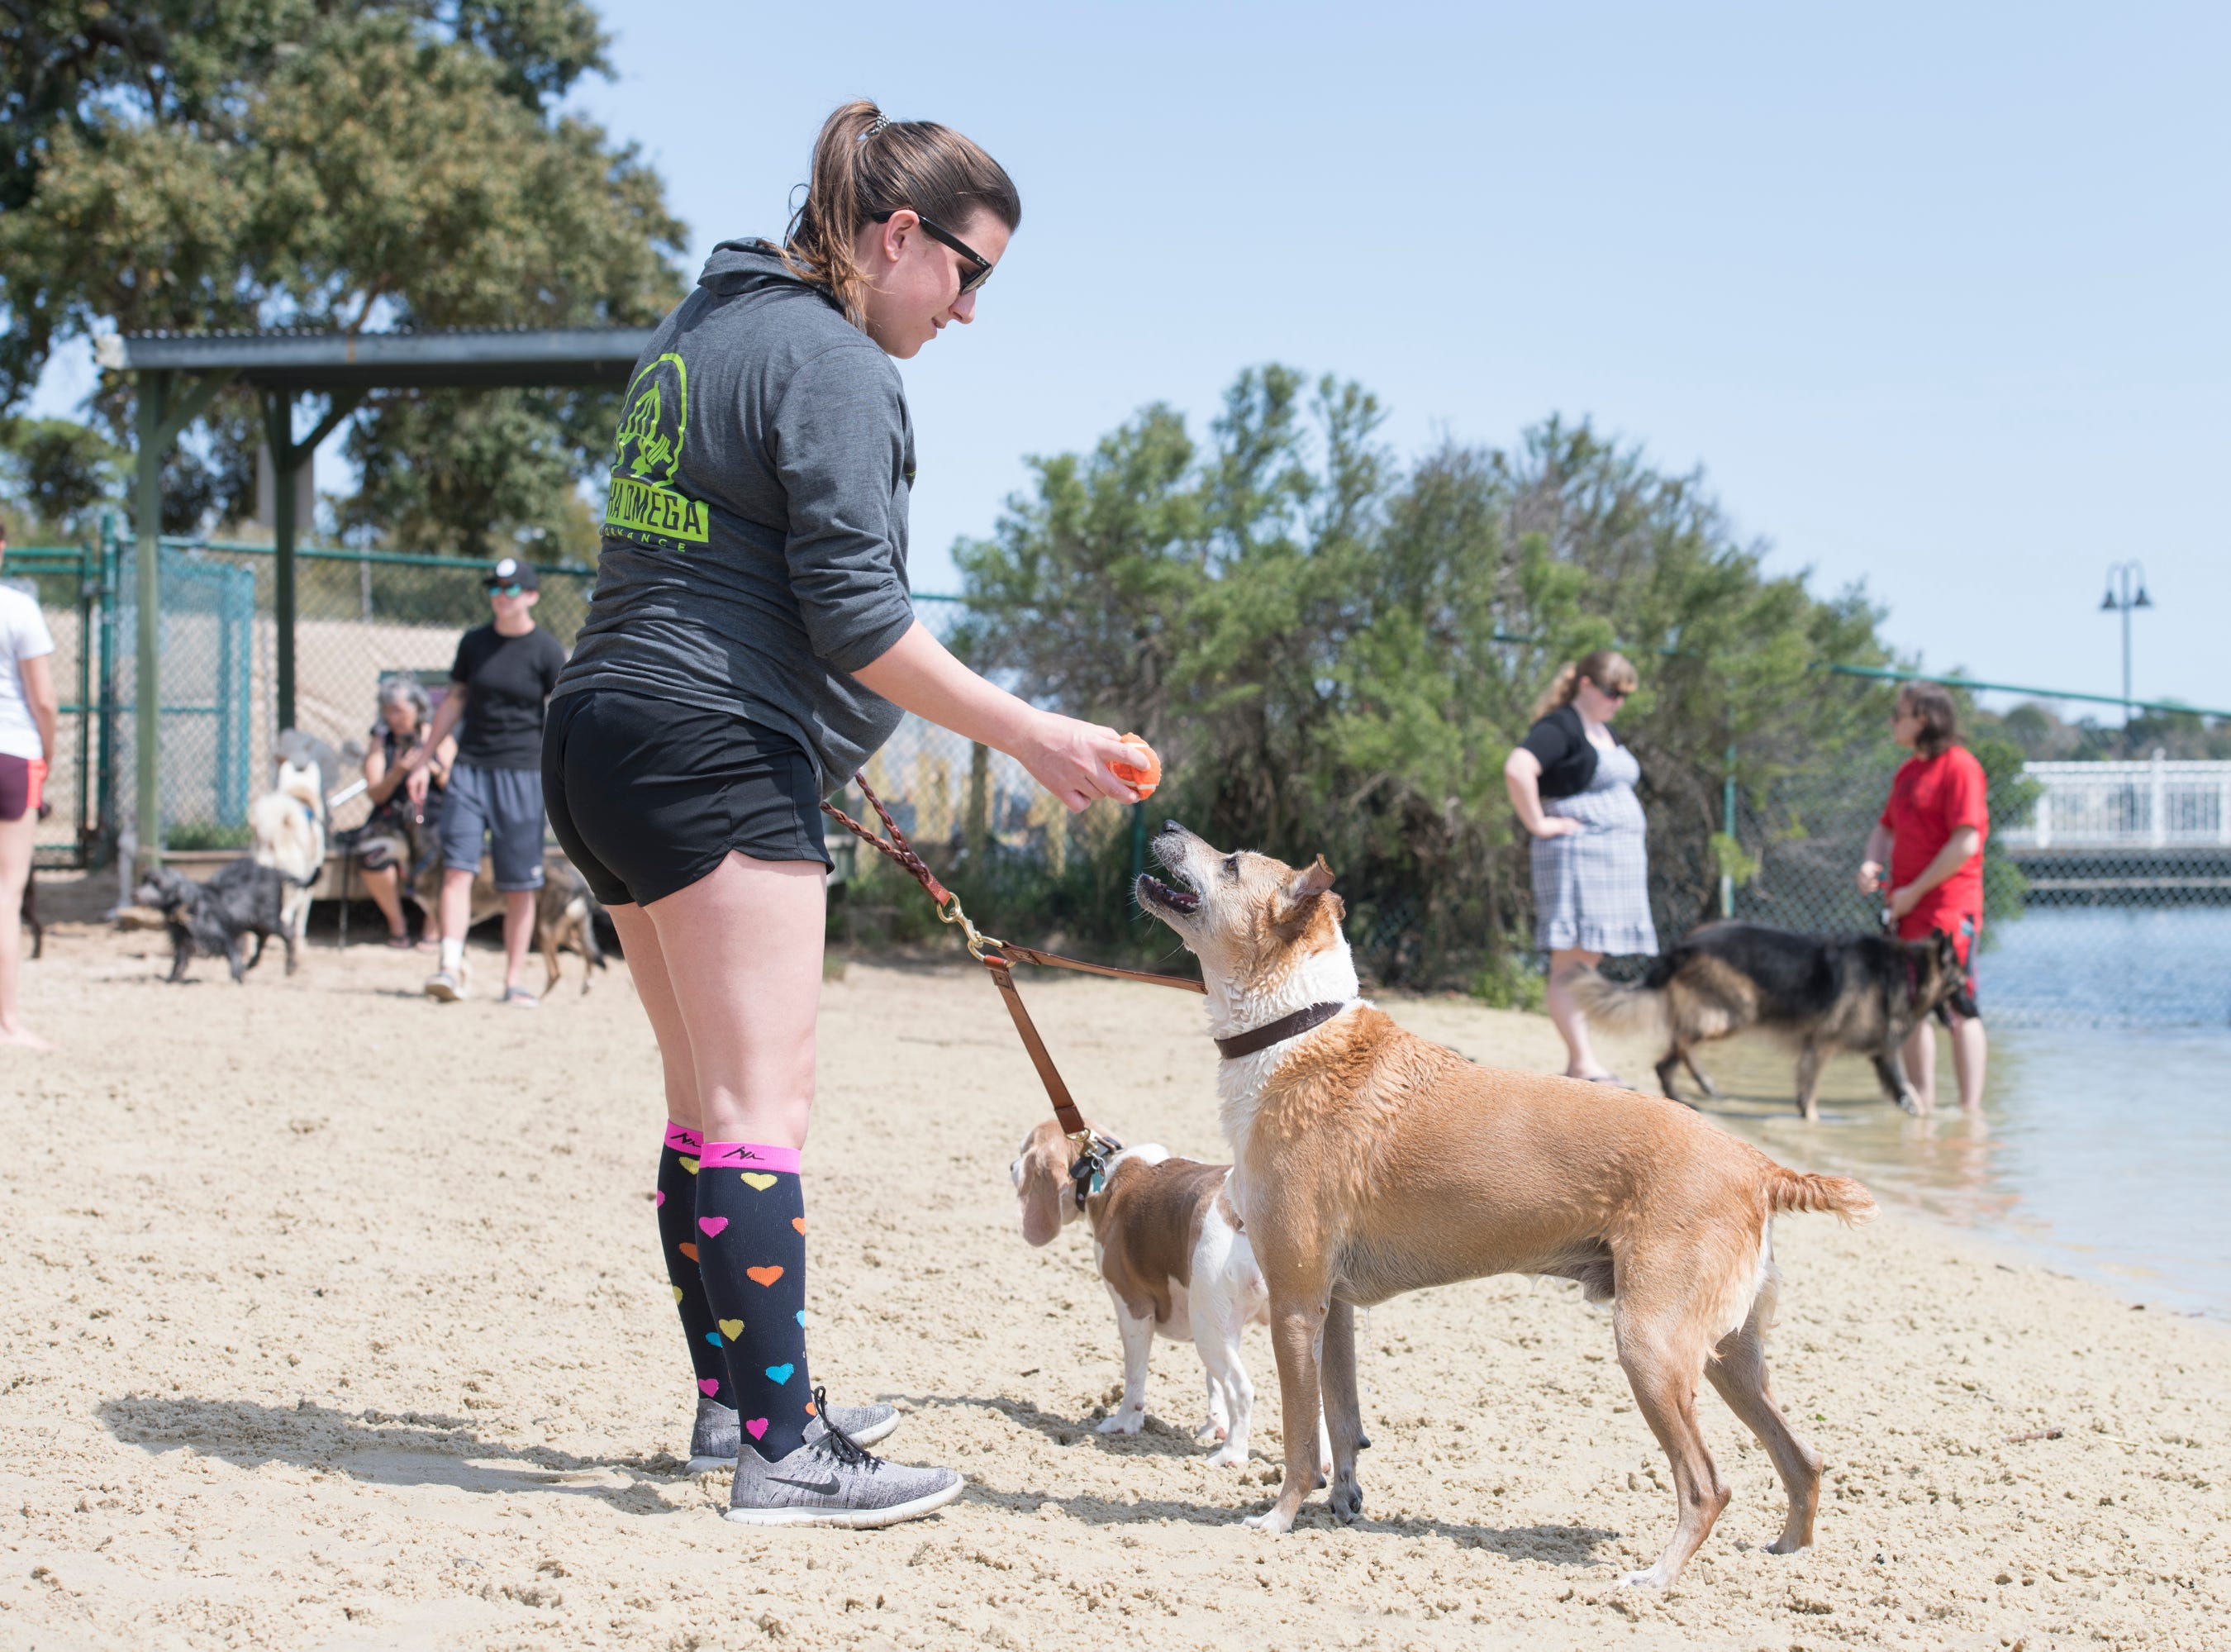 Allie Mink plays ball with her dogs Max, right, and Chloe at Bayview Park's dog park in Pensacola on Tuesday, March 12, 2019.  Navarre residents hope to get a similar dog park for their city.